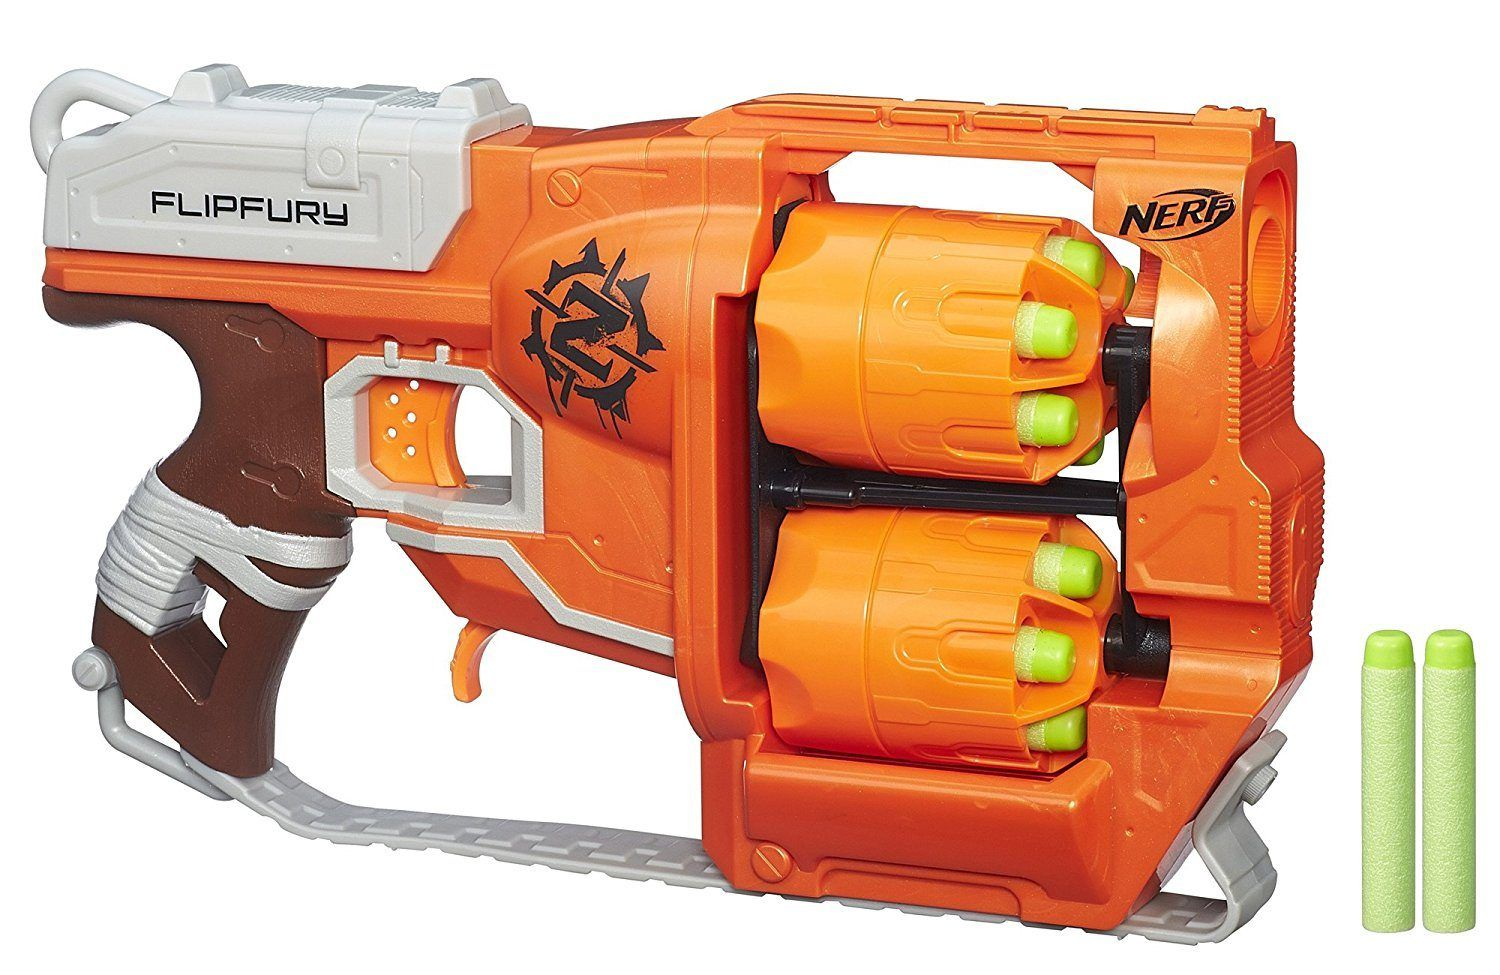 ... this Nerf N-Strike Elite Rapidstrike CS-18 Blaster for only $25.18  which is CHEAPER than the price originally listed on the Pre-Black Friday  Deal list!